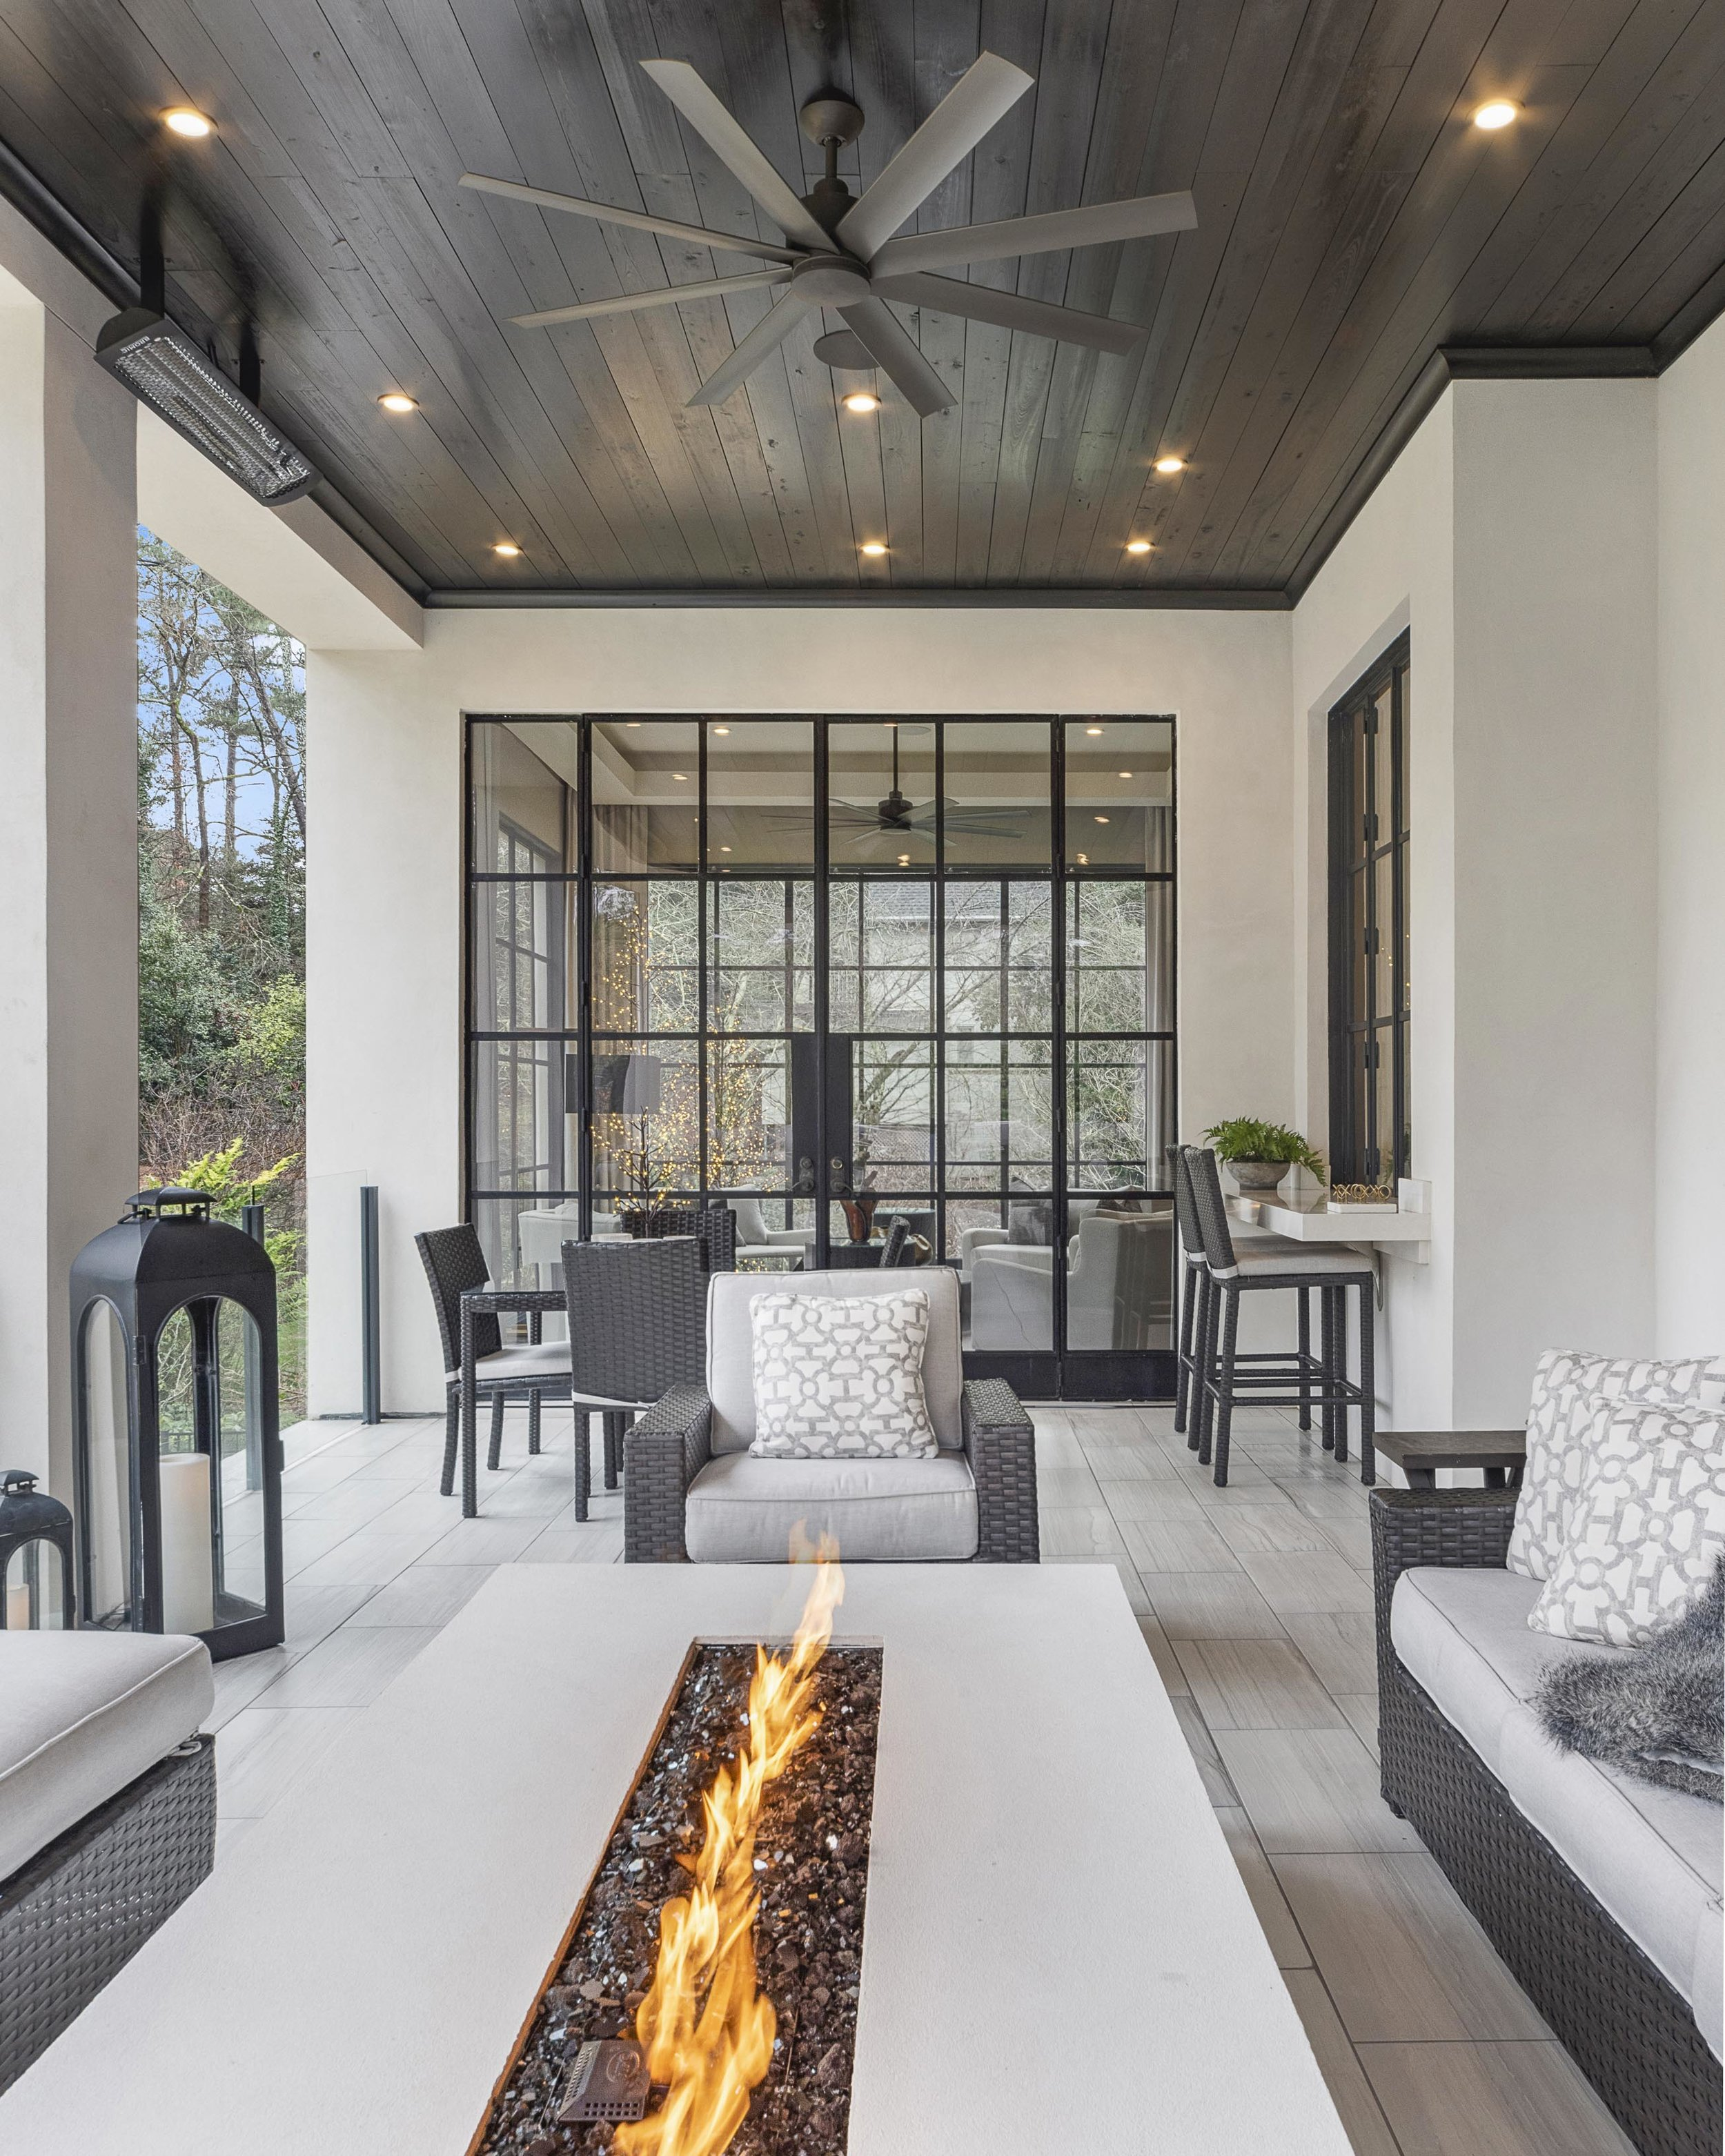 Habersham_outdoor room with fire feature.jpg